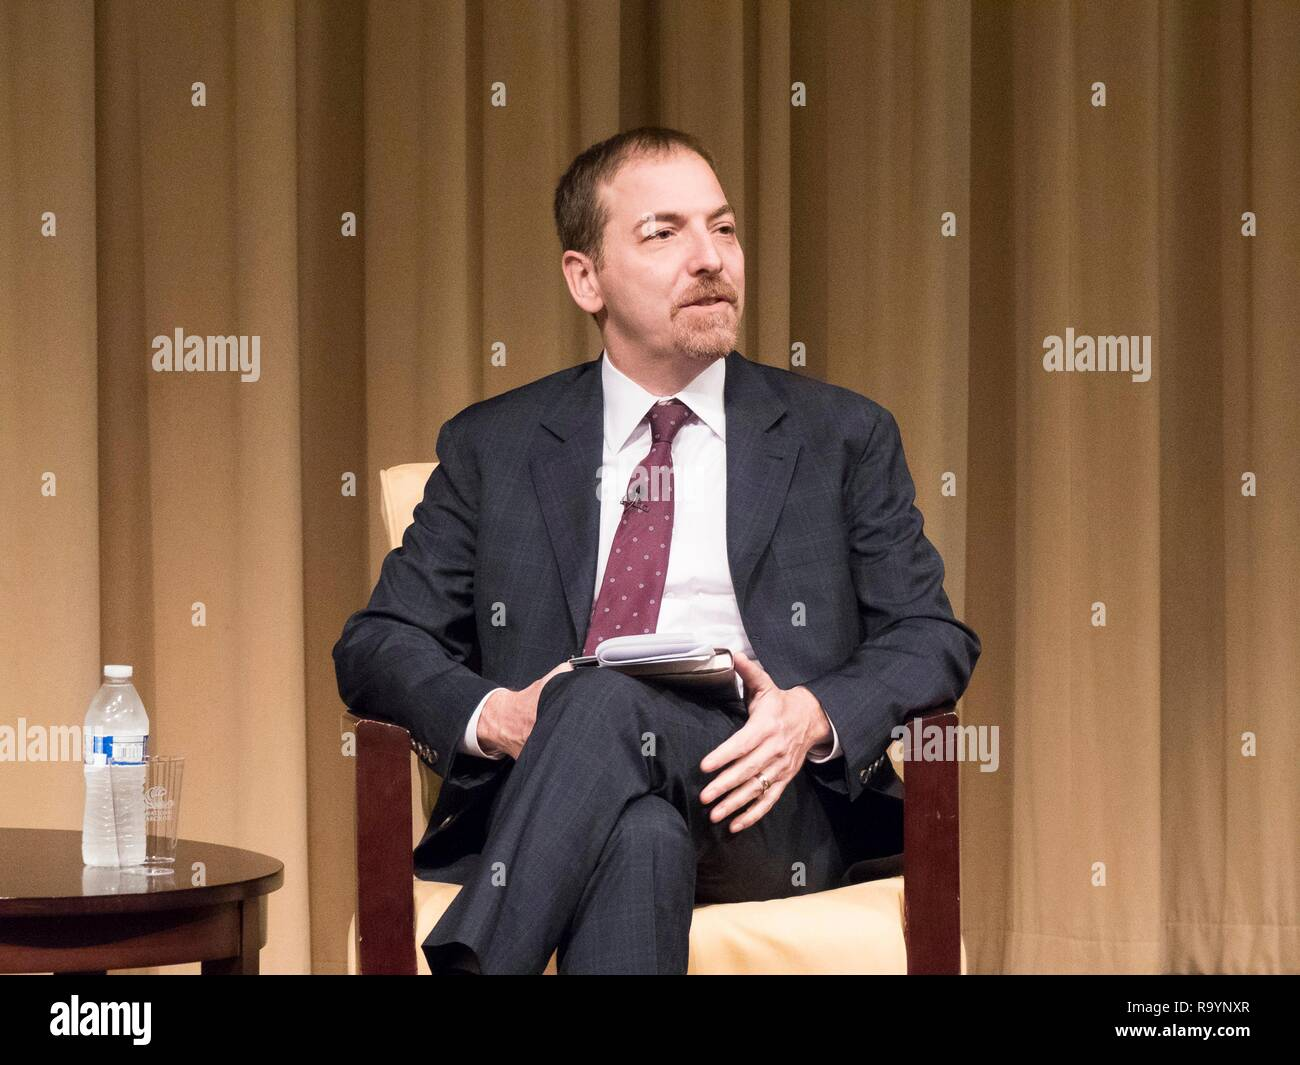 Chuck Todd, host of NBC Meet the Press during a discussion with author Stephen Hess at the National Archives December 4, 2018 in Washington, D.C. - Stock Image